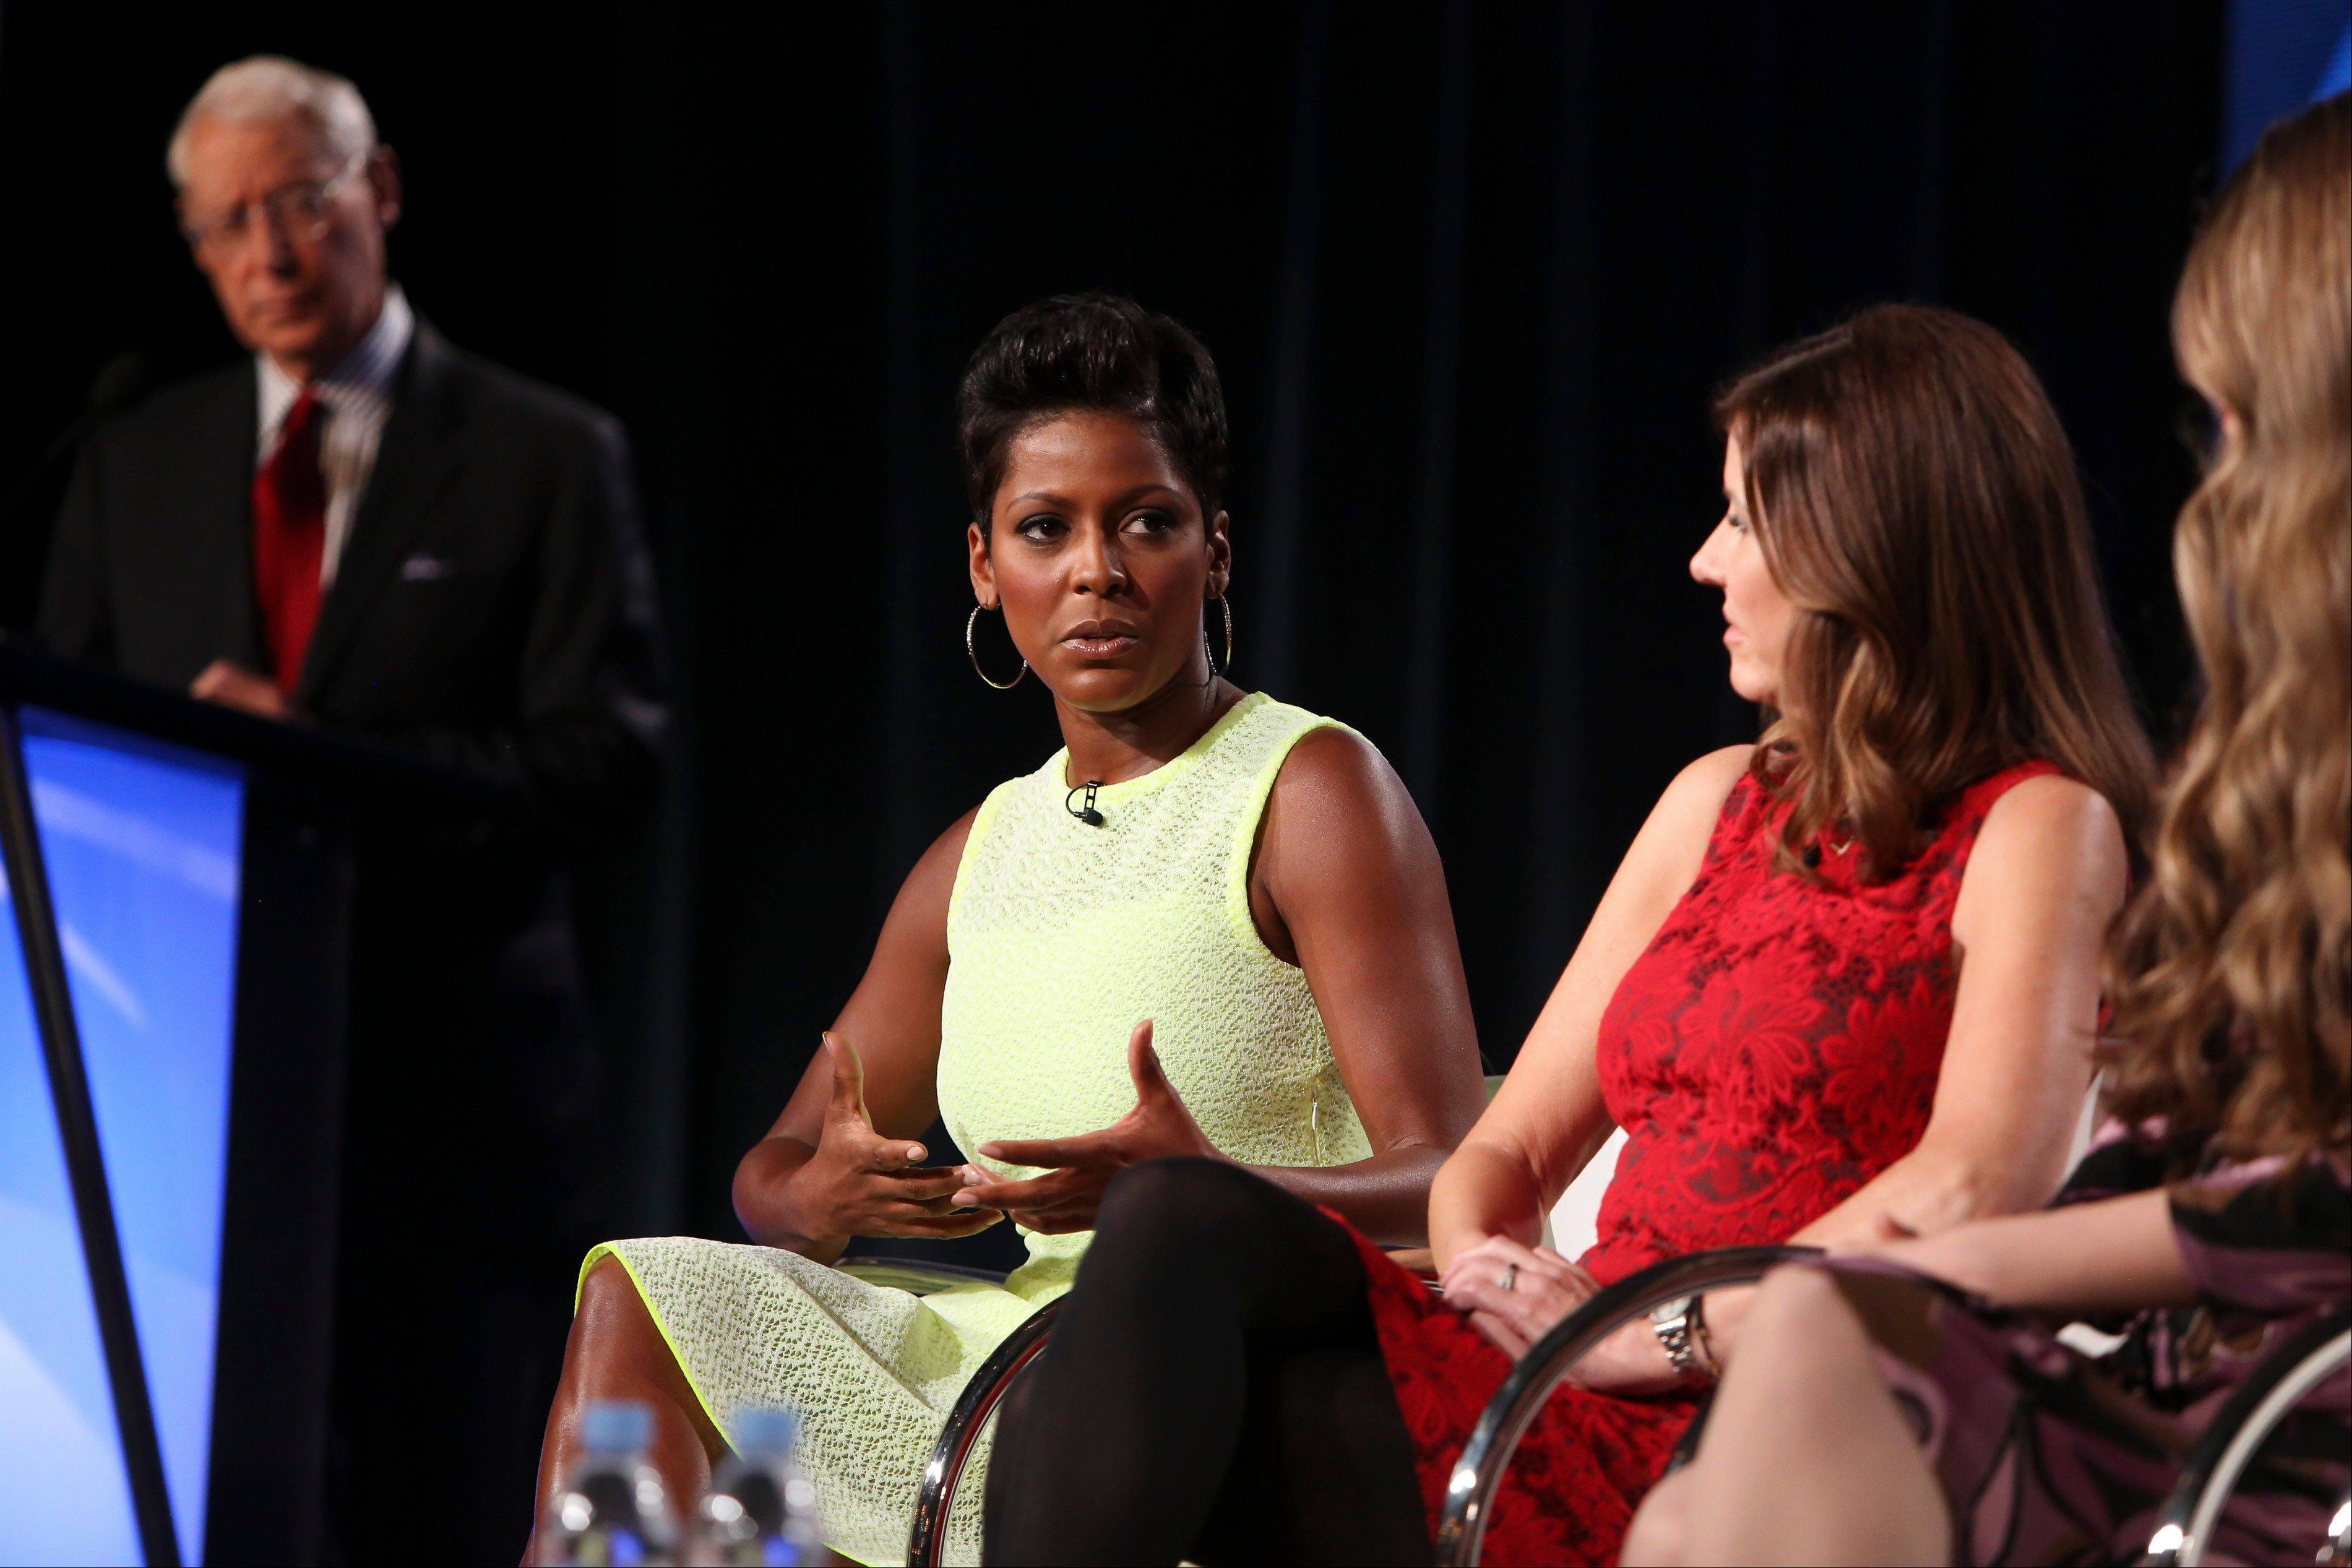 Henry Schleiff, left, Group President; Tamron Hall, host of �Deadline: Crime with Tamron Hall�: Sharon Scott, Executive Vice President of NBC News� Peacock Productions; and Alicia Kozakiewica, Internet Safety & Awareness Advocate and Founder of the Alicia Project, speak during the Discovery Communications TCA Panel Thursday at The Langham Hotel in Pasadena, Calif. NBC�s Hall says her work on the series �Deadline Crime� is partly motivated by the feeling that she failed her sister, who was murdered in 2004.